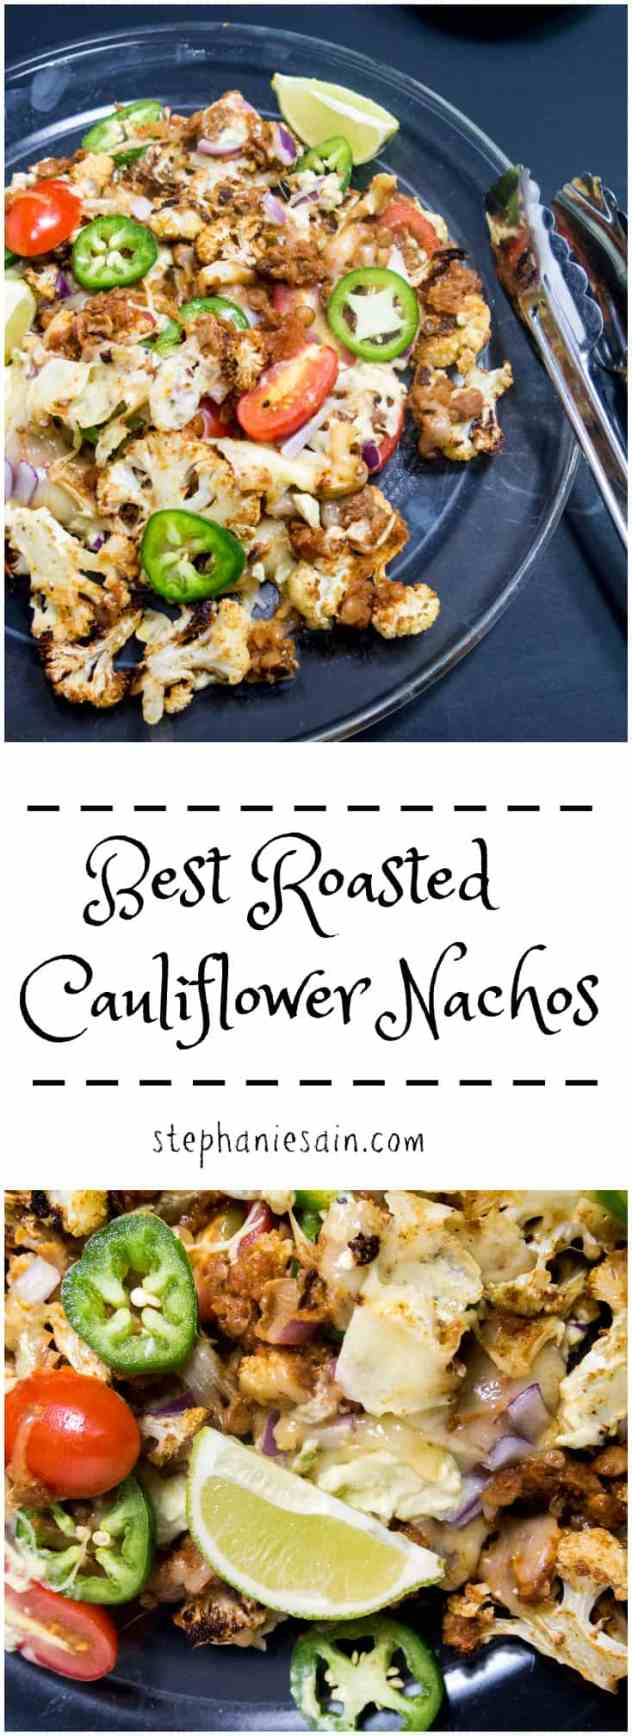 Best Roasted Cauliflower Nachos are a tasty, healthy appetizer or light dinner. Customizable so you can add your favorite toppings. Vegetarian, Gluten Free, and Vegan Option.